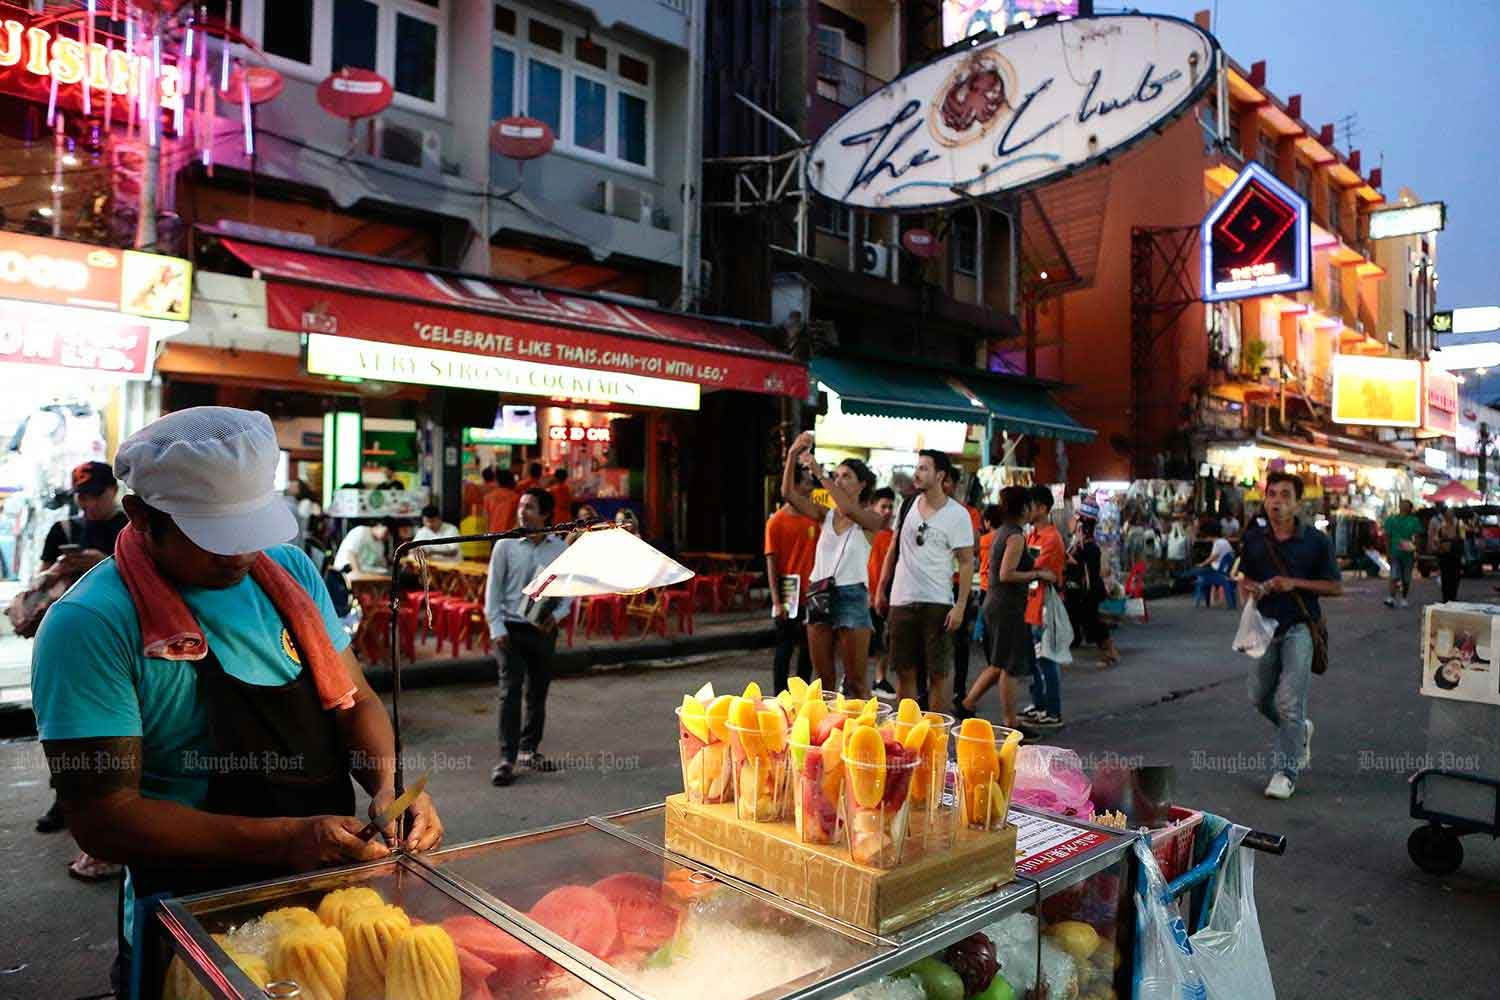 City Hall will improve Khao San Road by repaving it and setting specific areas for vendors. (Bangkok Post photo)